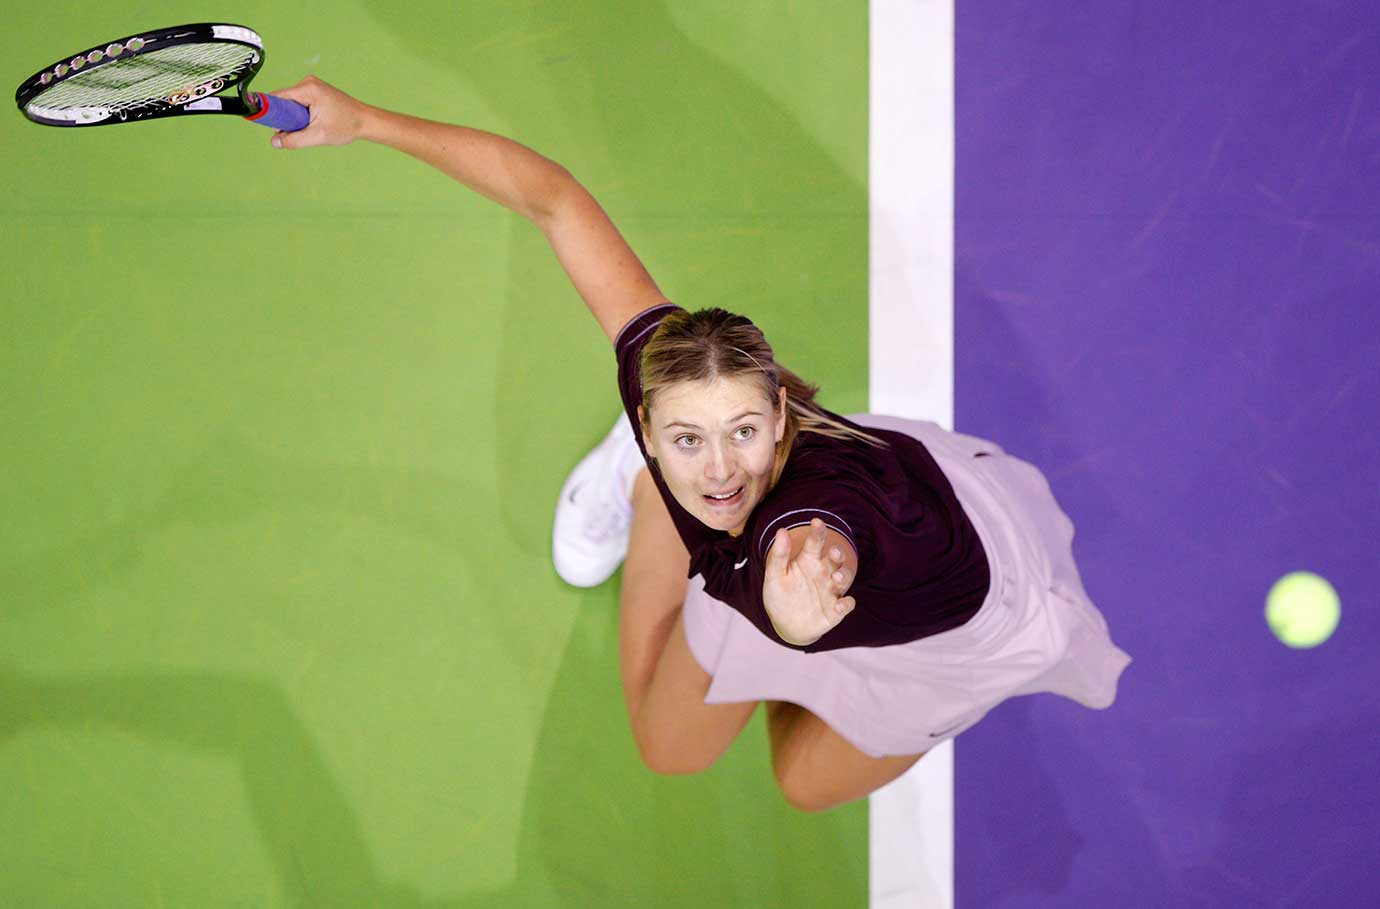 Maria Sharapova serves to Justine Henin at the 2007 Sony Ericsson WTA Tour Championships in Madrid, Spain.